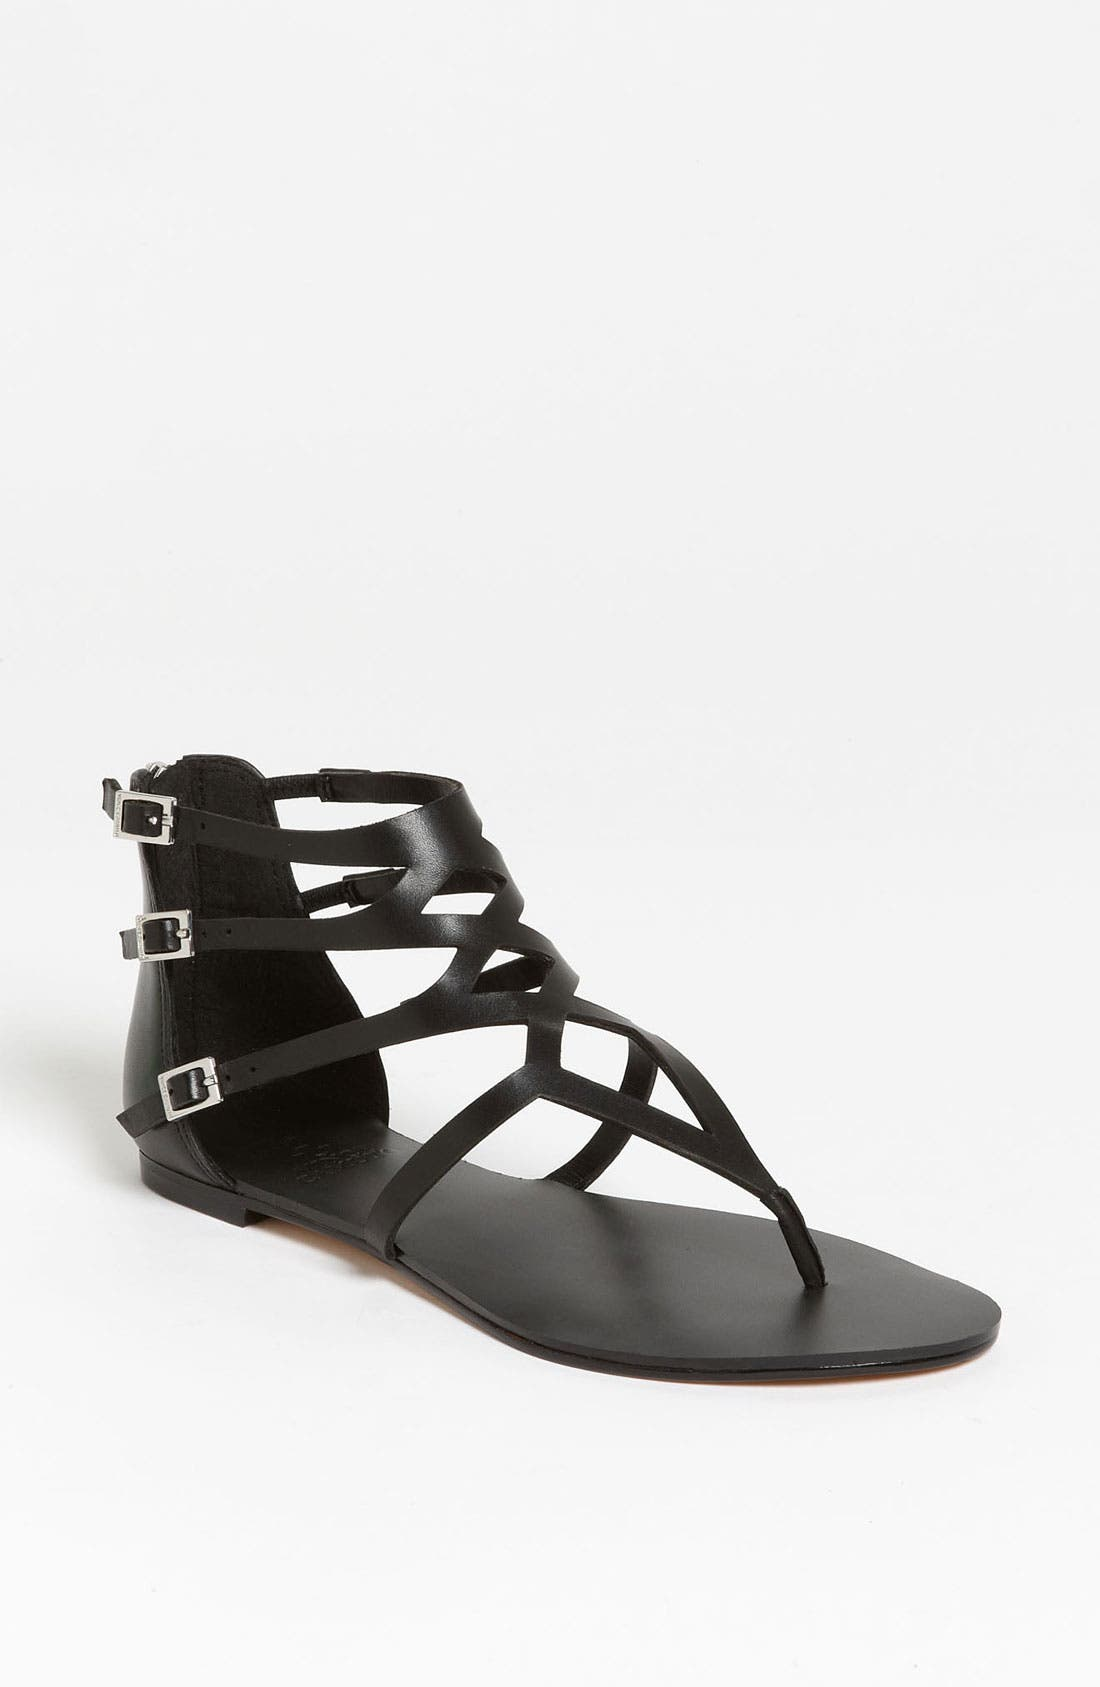 Alternate Image 1 Selected - Vince Camuto 'Ebi' Sandal